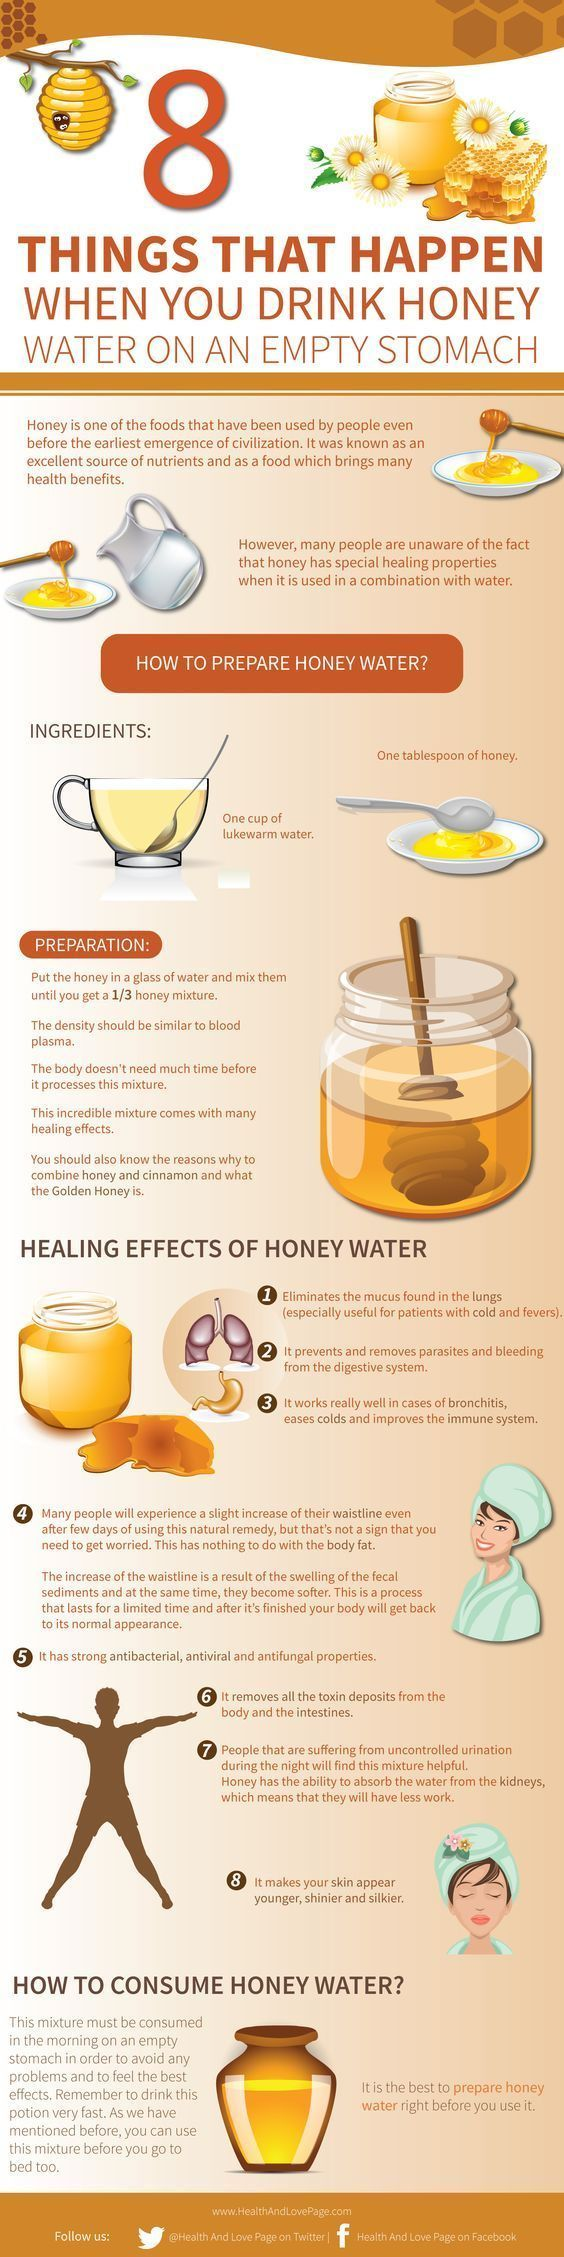 8 Healing Effects of Honey Water, How to Prepare and How to Consume Honey Water.